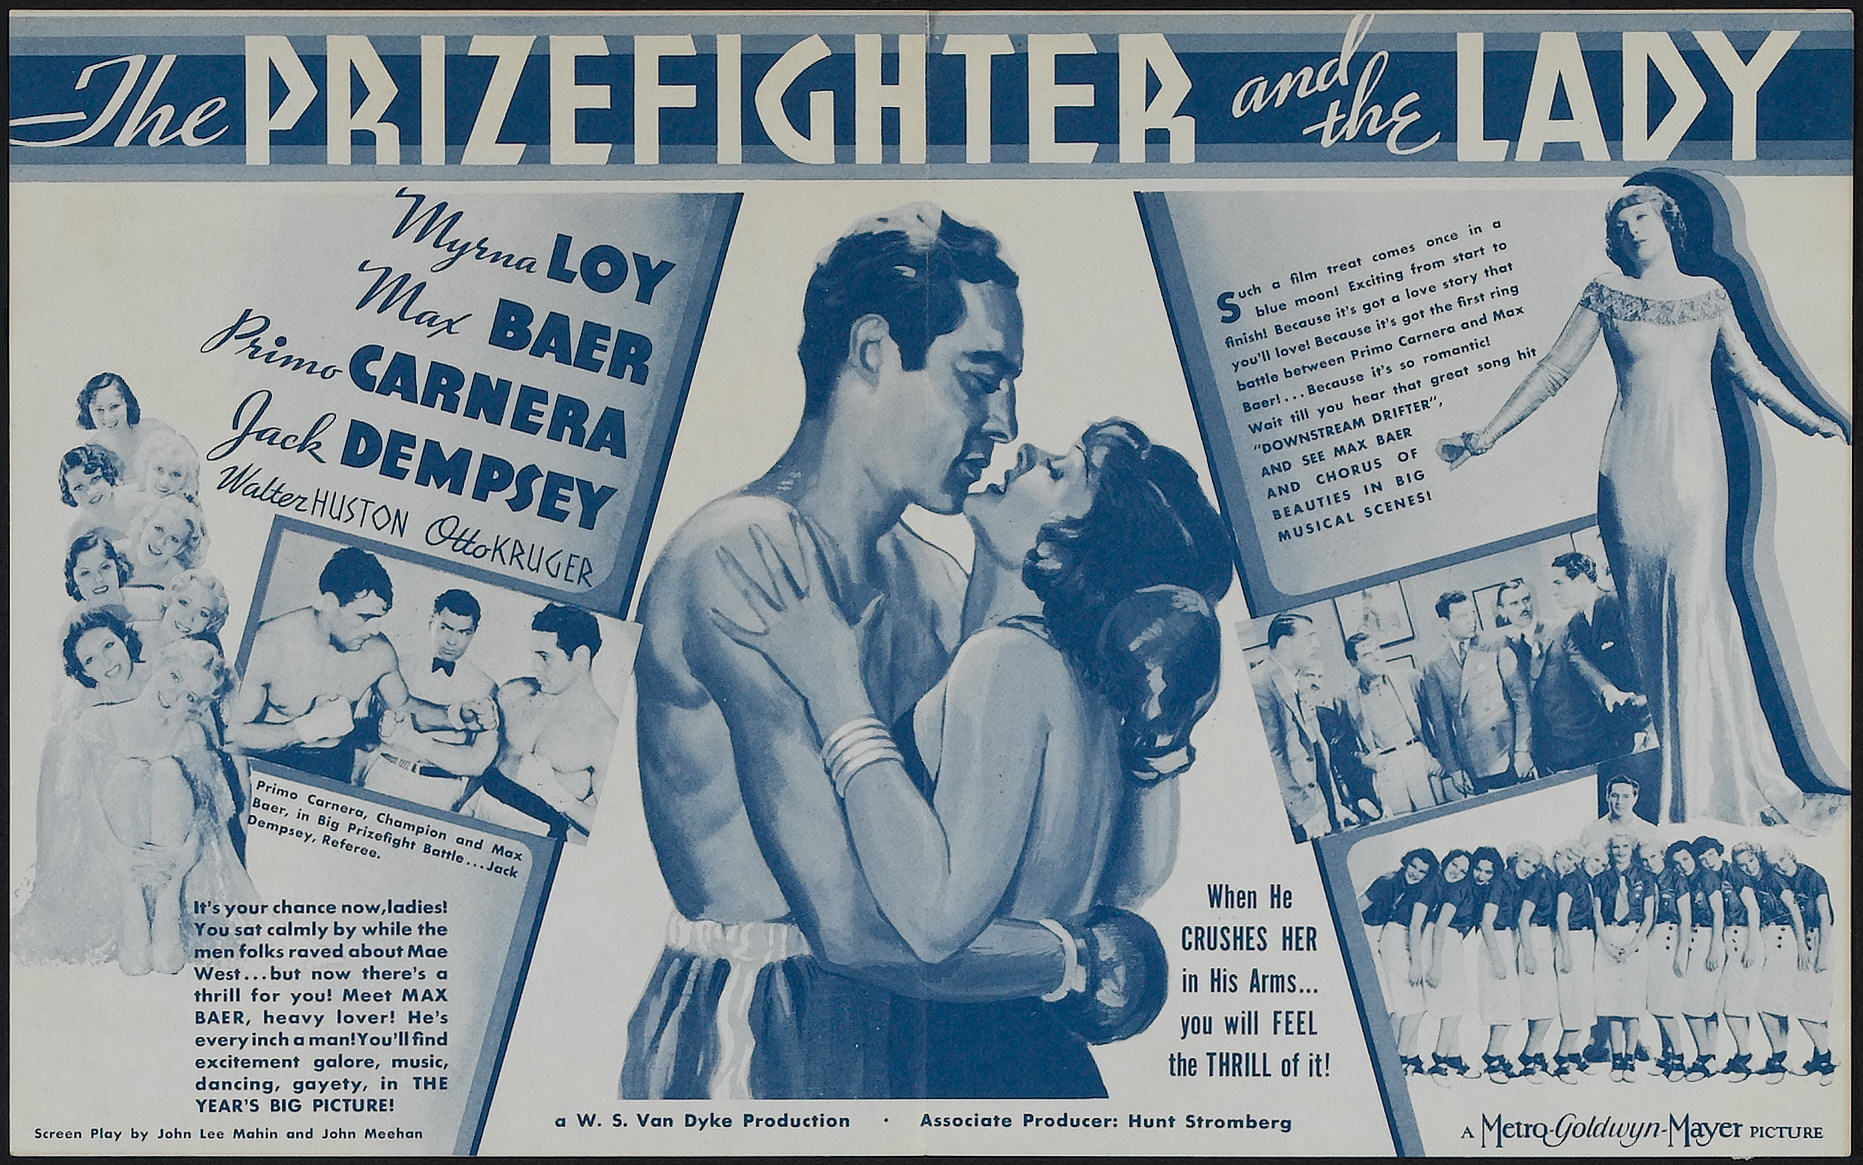 Myrna Loy, Zita Baca, Max Baer, Primo Carnera, Jack Dempsey, Jean Howard, Walter Huston, and Miriam Marlin in The Prizefighter and the Lady (1933)